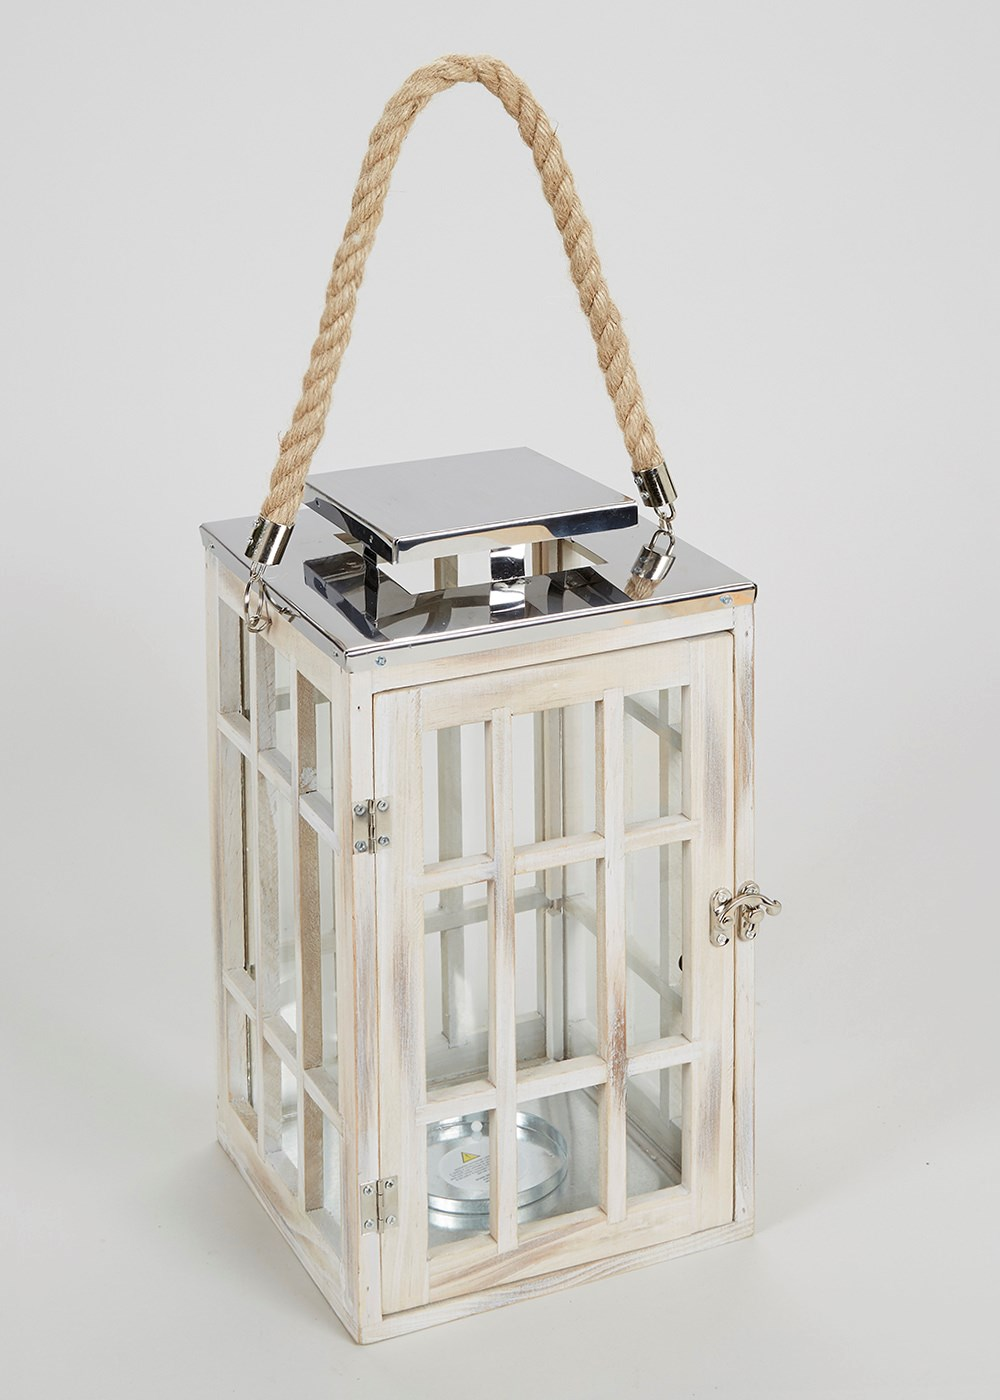 Wooden nautical style hurricane lantern